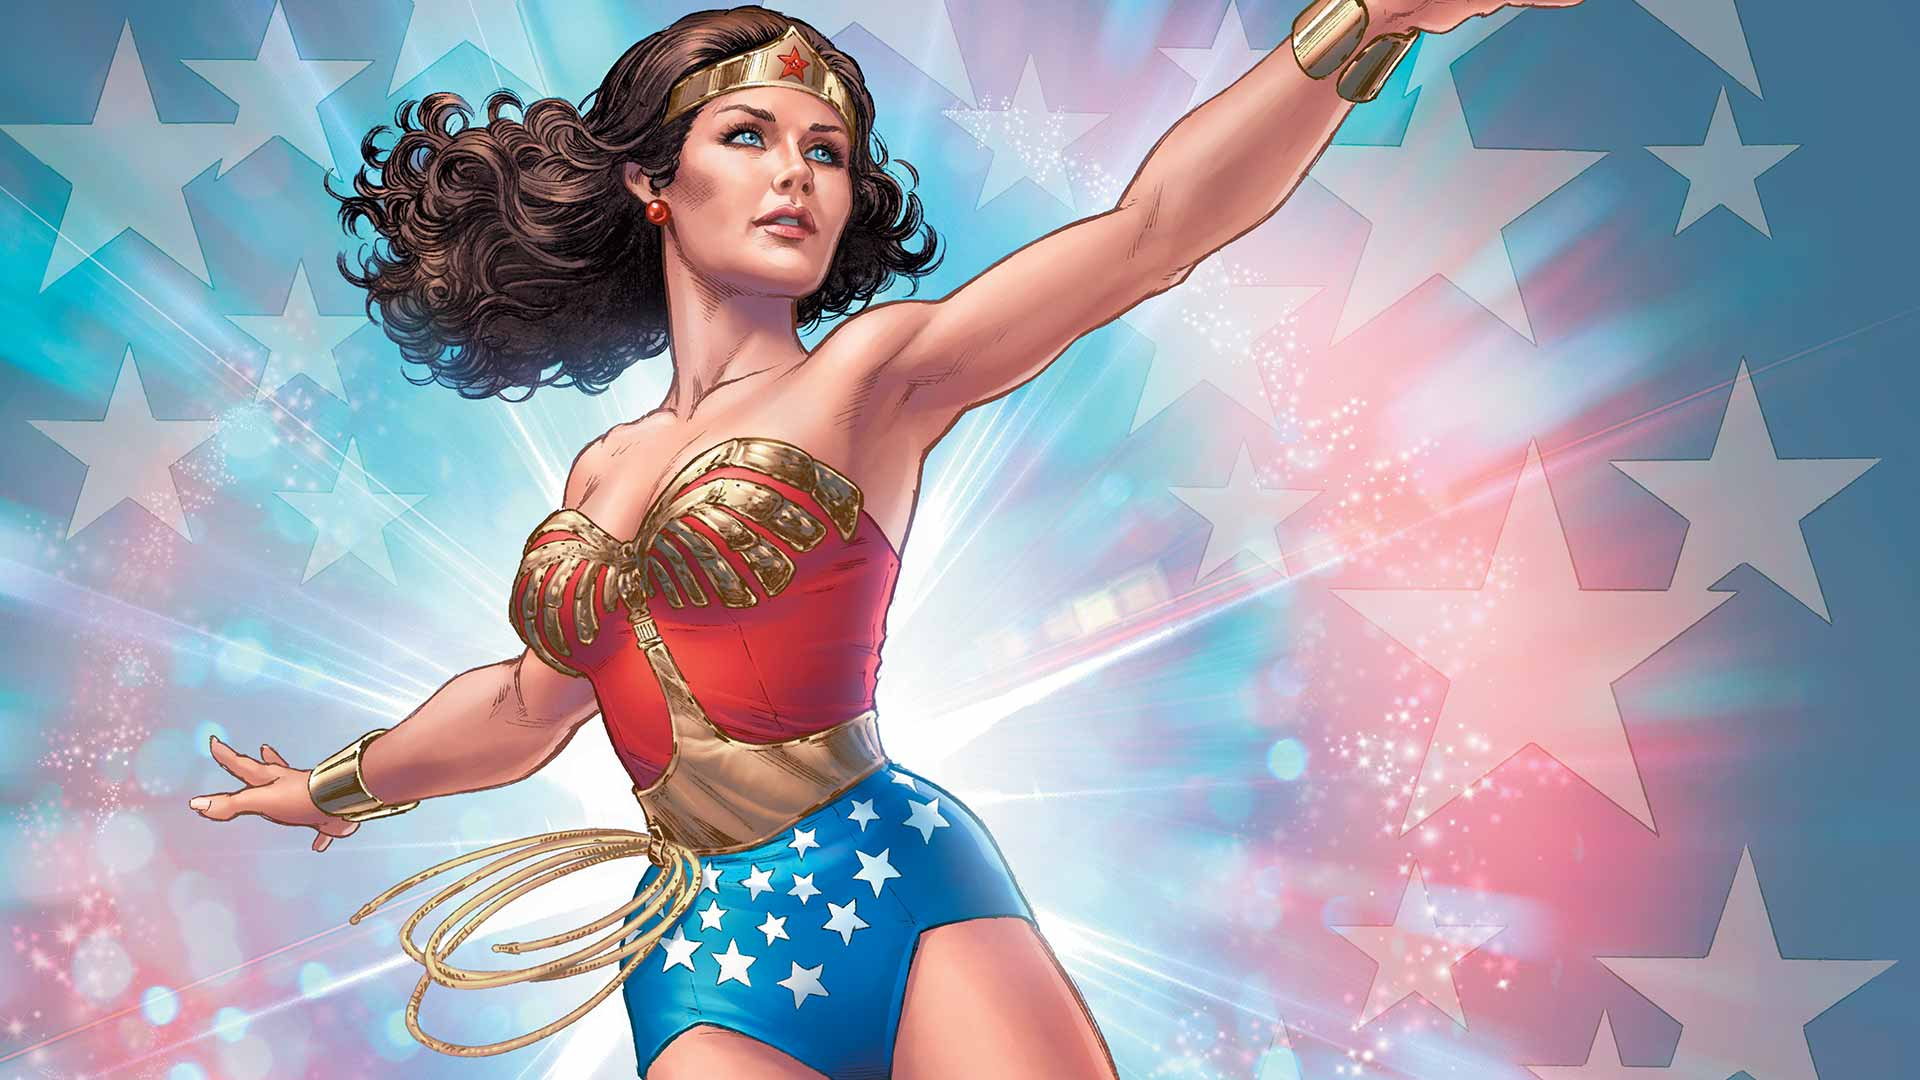 GalleryComics_1920x1080_20150429_WonderWoman'77_CMYK-new-neck-v2_552849f55810a9.84883346.jpg